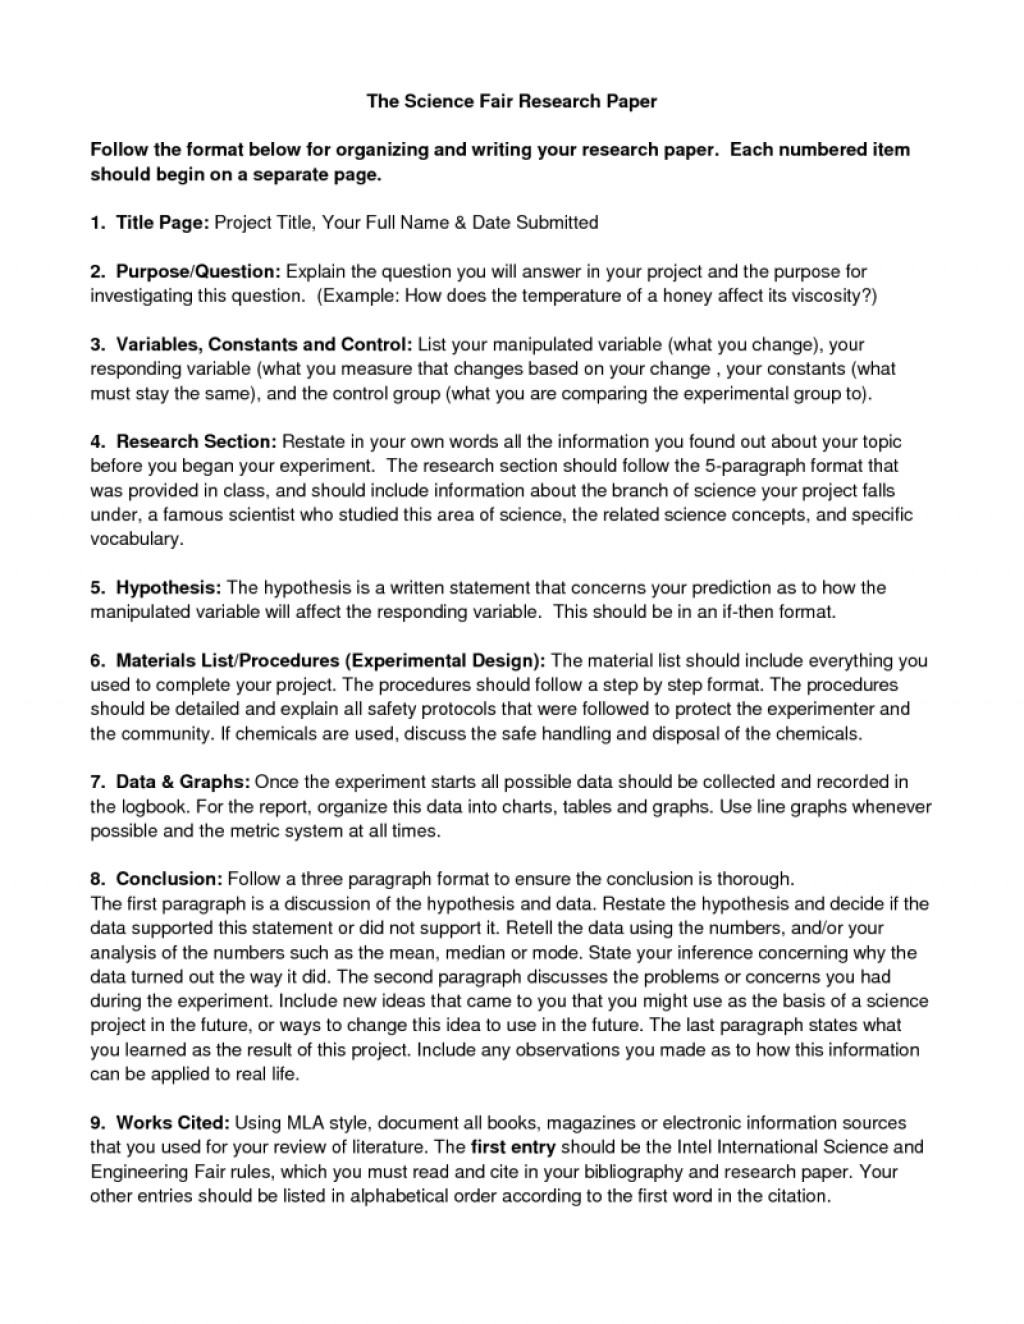 021 Researchr Ideas Of Science Fair Outline Unique Political Guidelines Guidelinesresize8001035 Order Wonderful A Research Paper Reviews Making Large